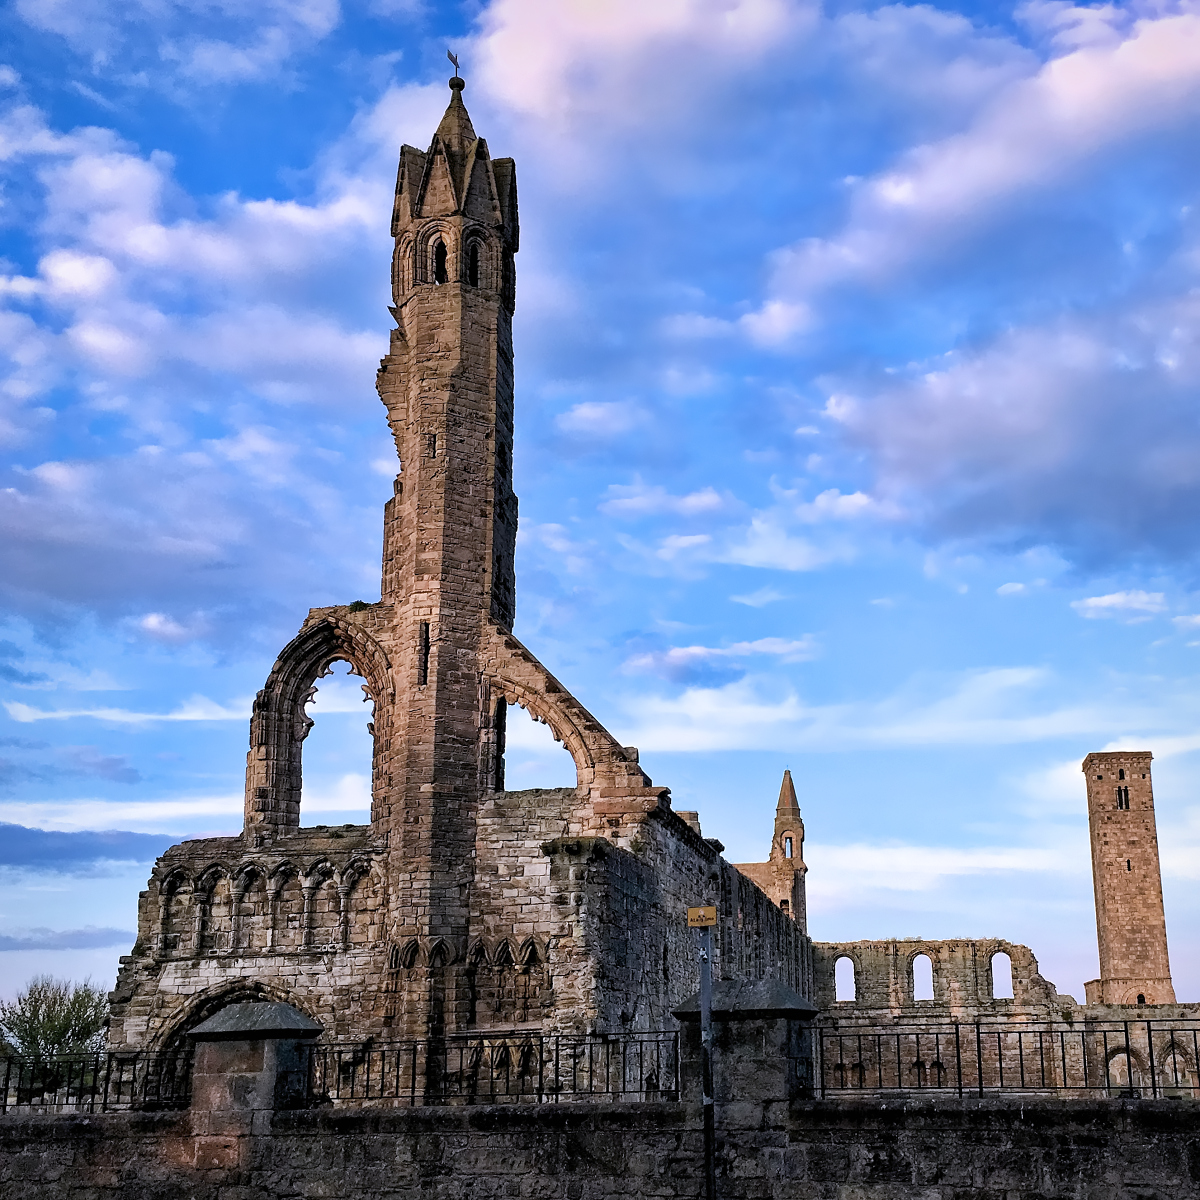 The impressive ruin of St Andrews Cathedral in Scotland